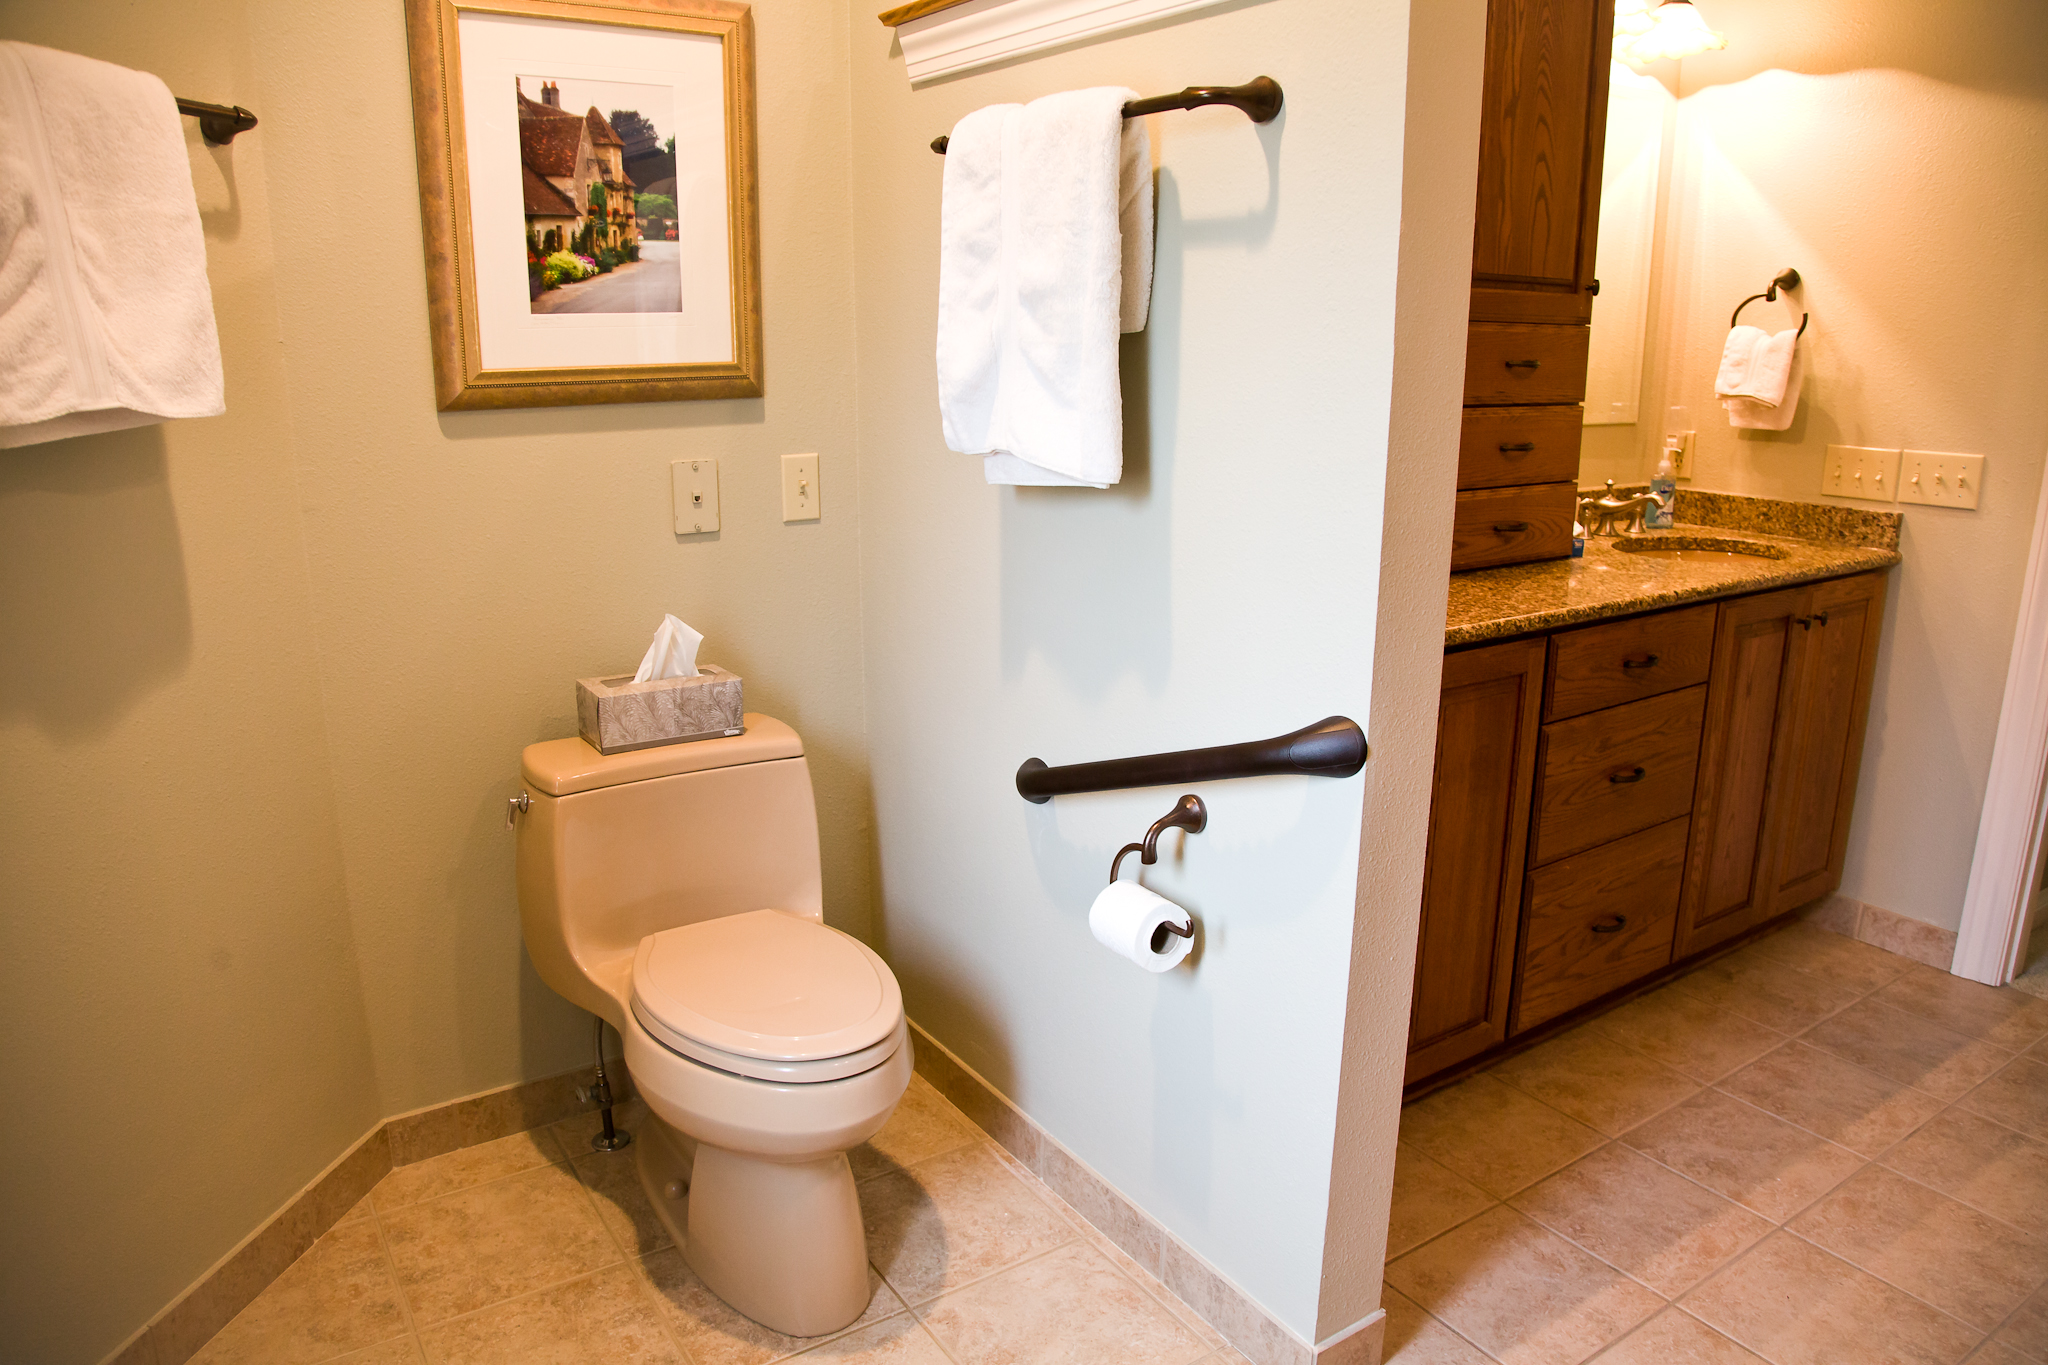 Permalink · Bathroom Grab Bars Installed By Smart Accessible Living Gallery